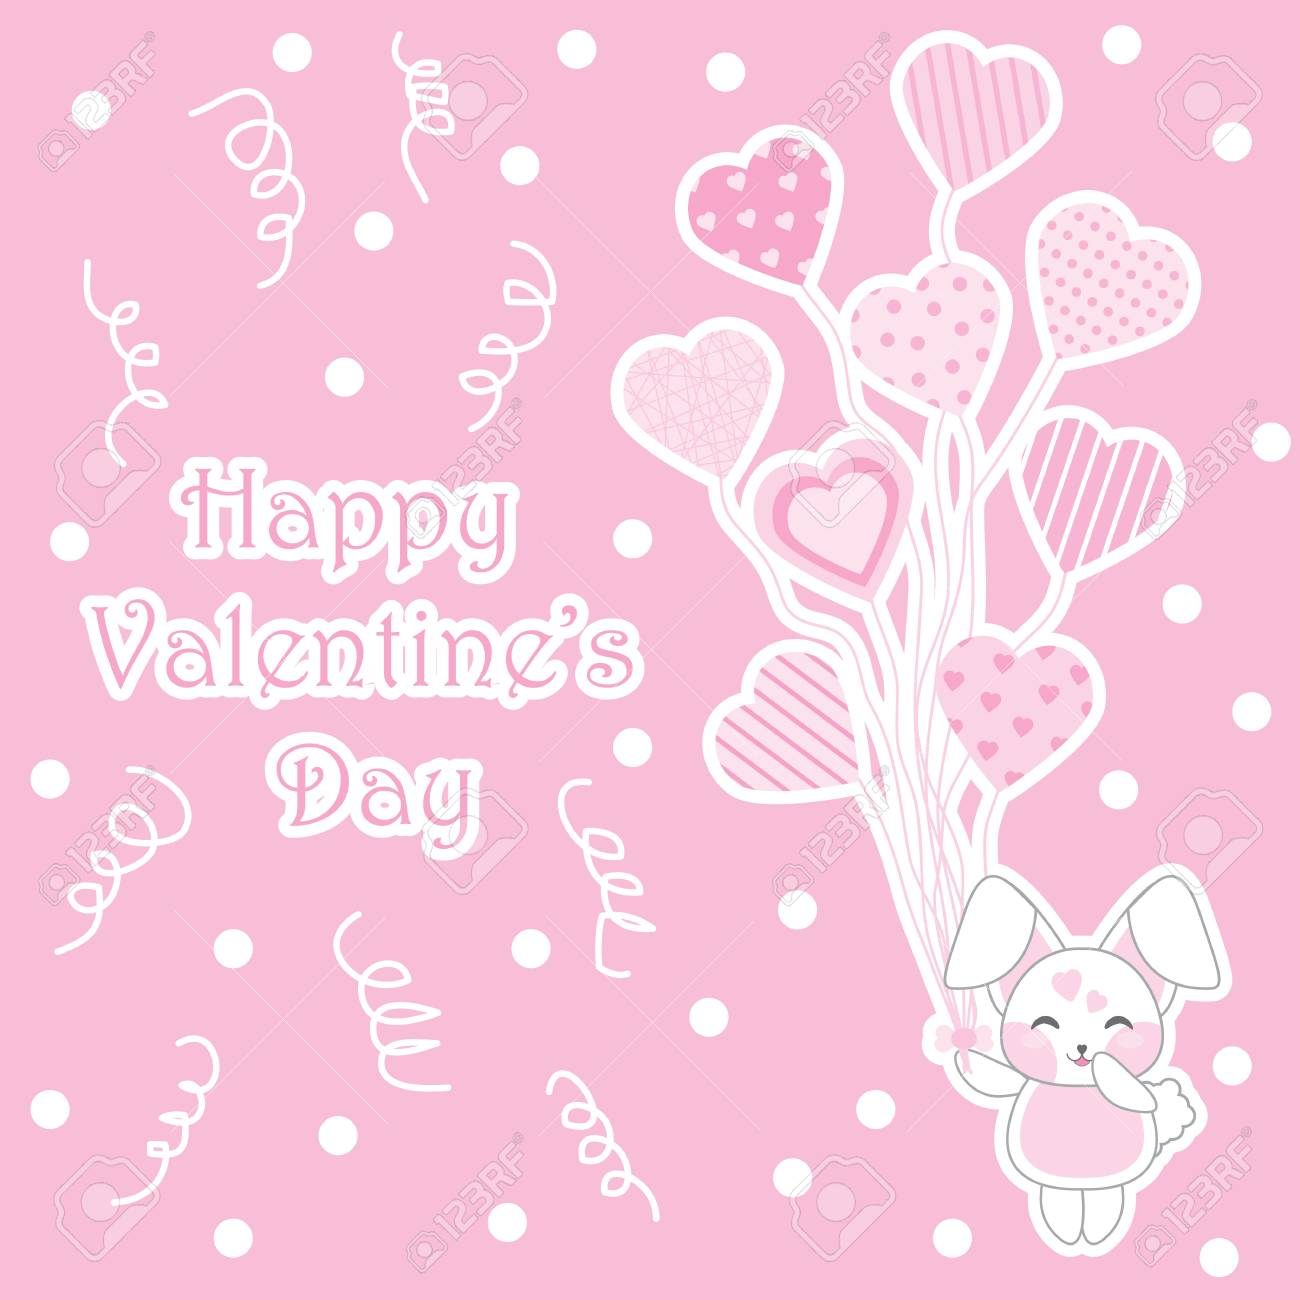 Valentine Illustration With Cute Baby Bunny Bring Love Balloons 1300x1300